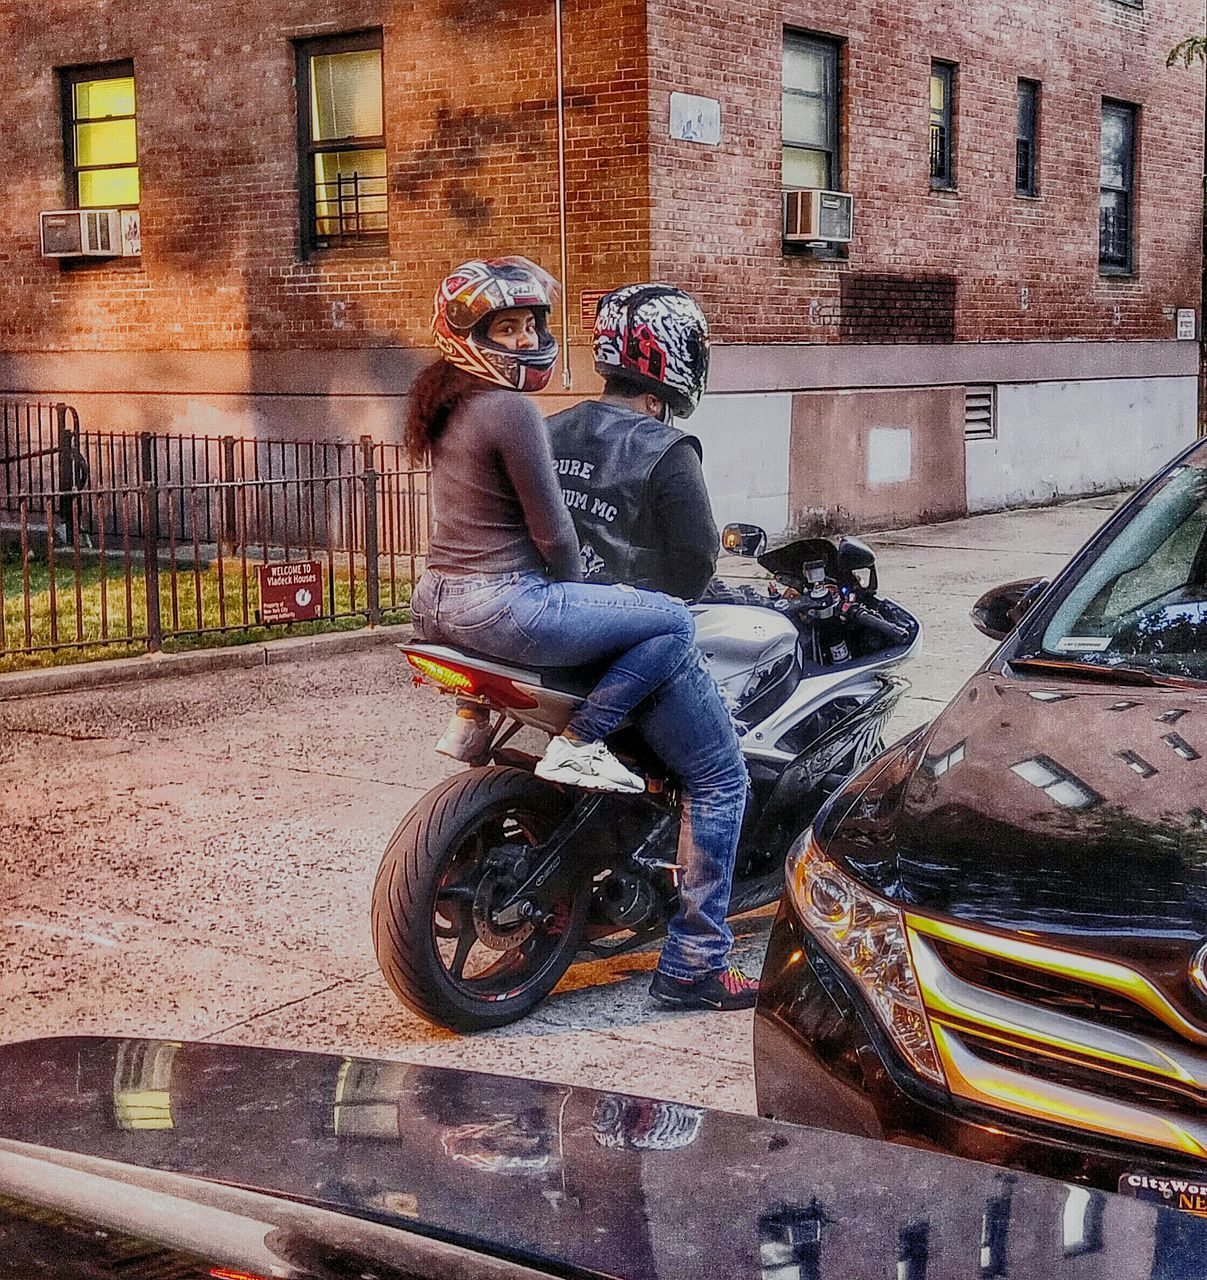 transportation, real people, two people, architecture, built structure, motorcycle, building exterior, land vehicle, mode of transport, lifestyles, full length, women, car, men, leisure activity, day, togetherness, outdoors, city, biker, headwear, young adult, adult, people, adults only